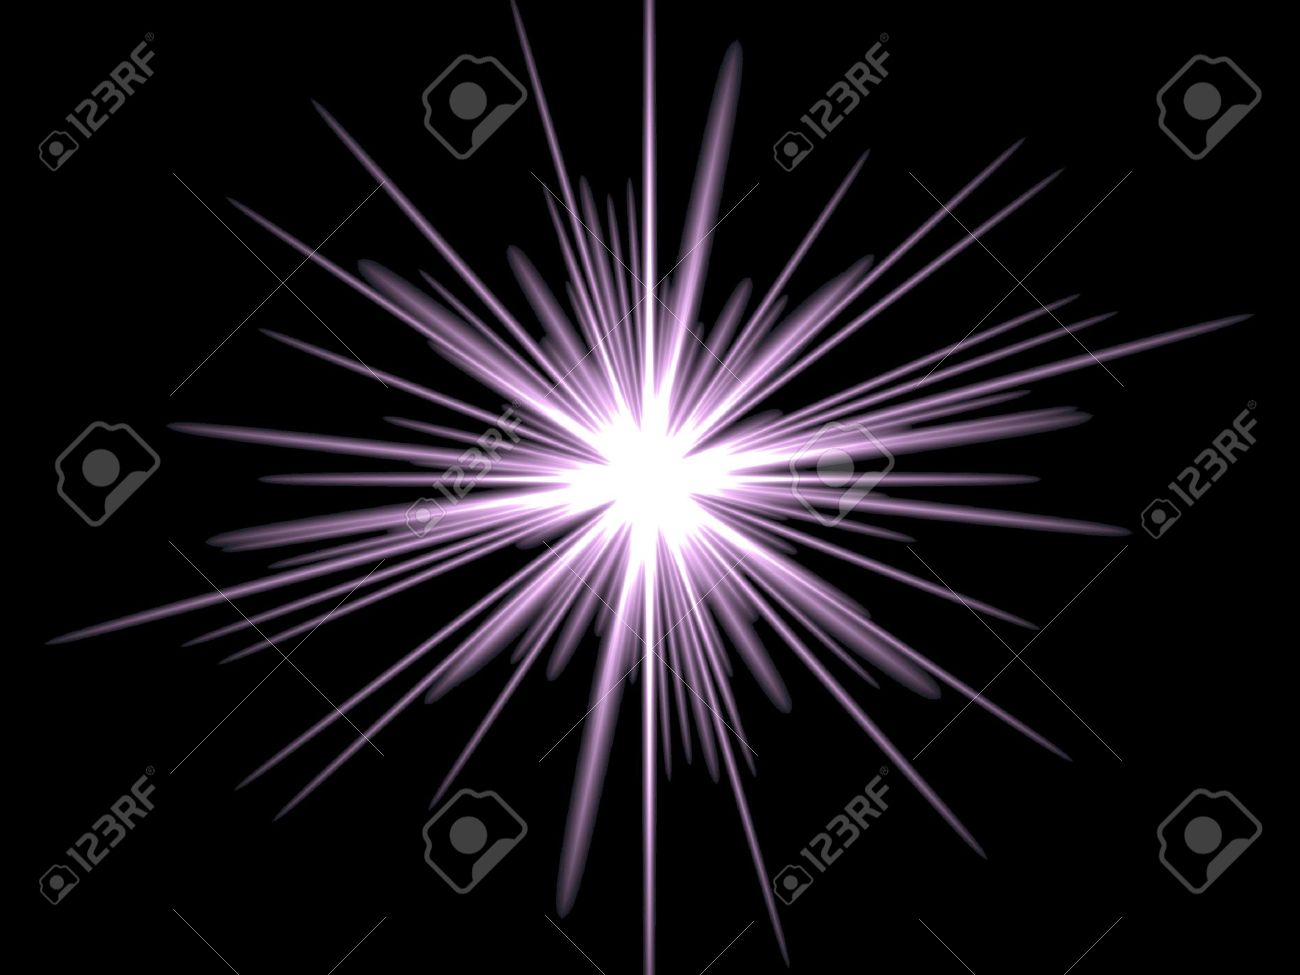 Violet star on a black background. Drawn in Photoshop. Stock Photo - 3118852